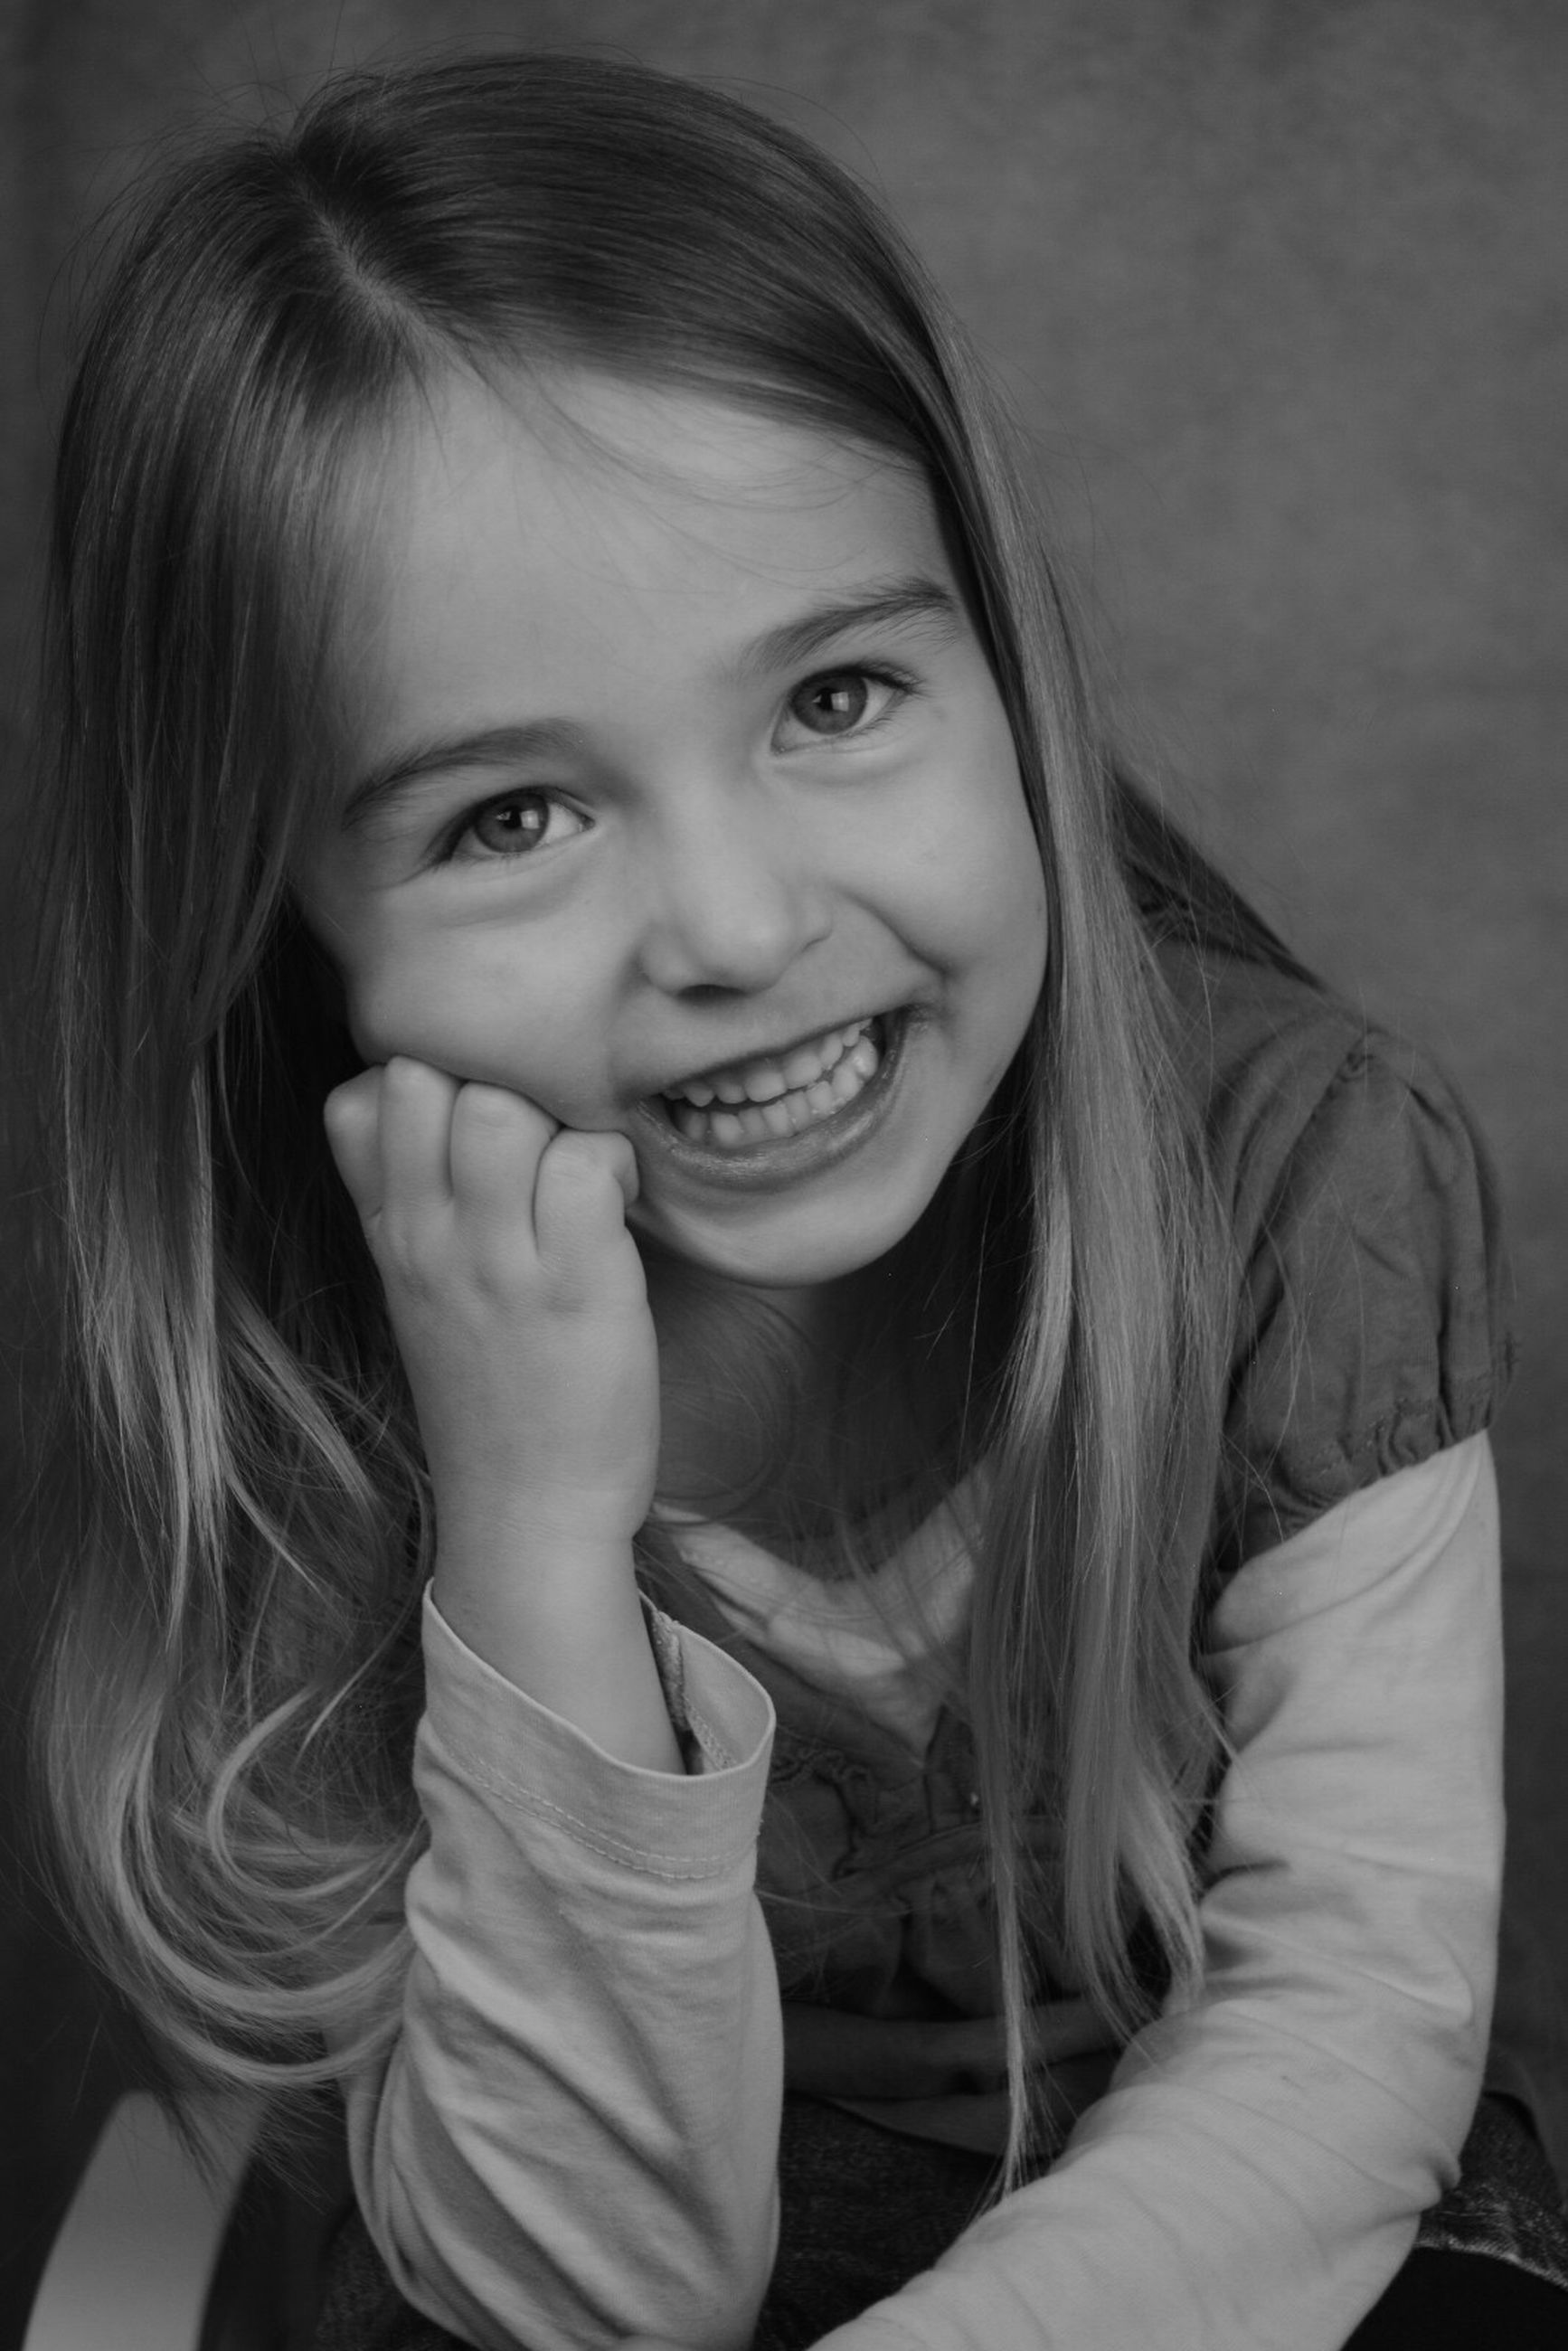 looking at camera, portrait, smiling, childhood, girls, one girl only, child, real people, one person, children only, happiness, headshot, close-up, cheerful, indoors, people, finger in mouth, human body part, day